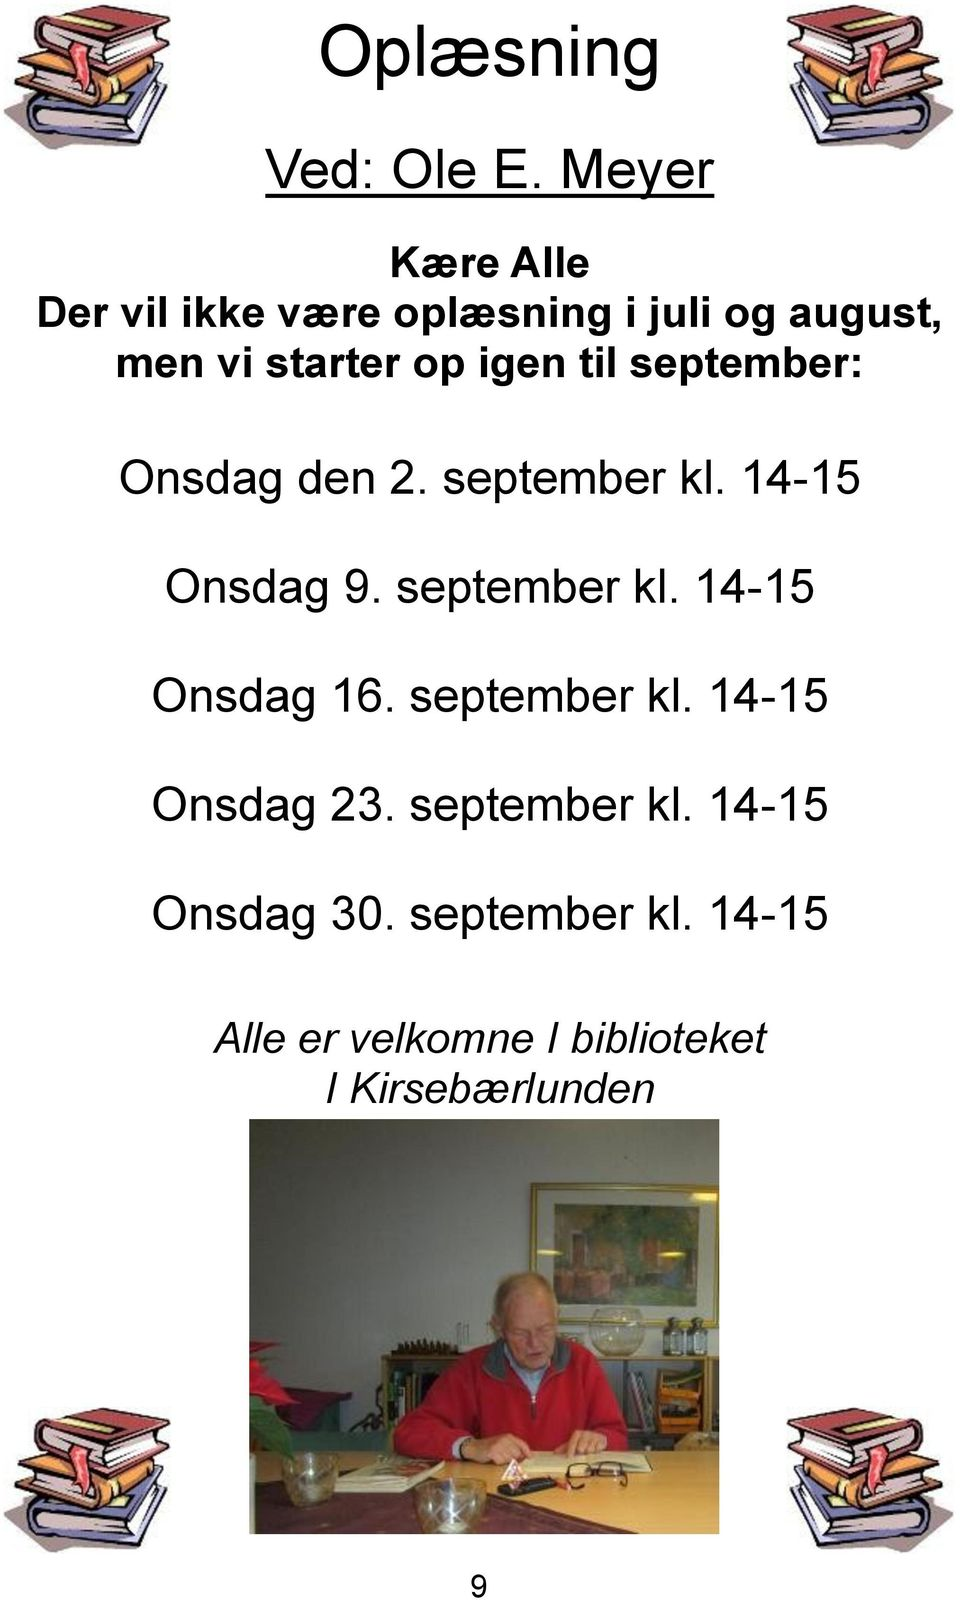 igen til september: Onsdag den 2. september kl. 14-15 Onsdag 9. september kl. 14-15 Onsdag 16.